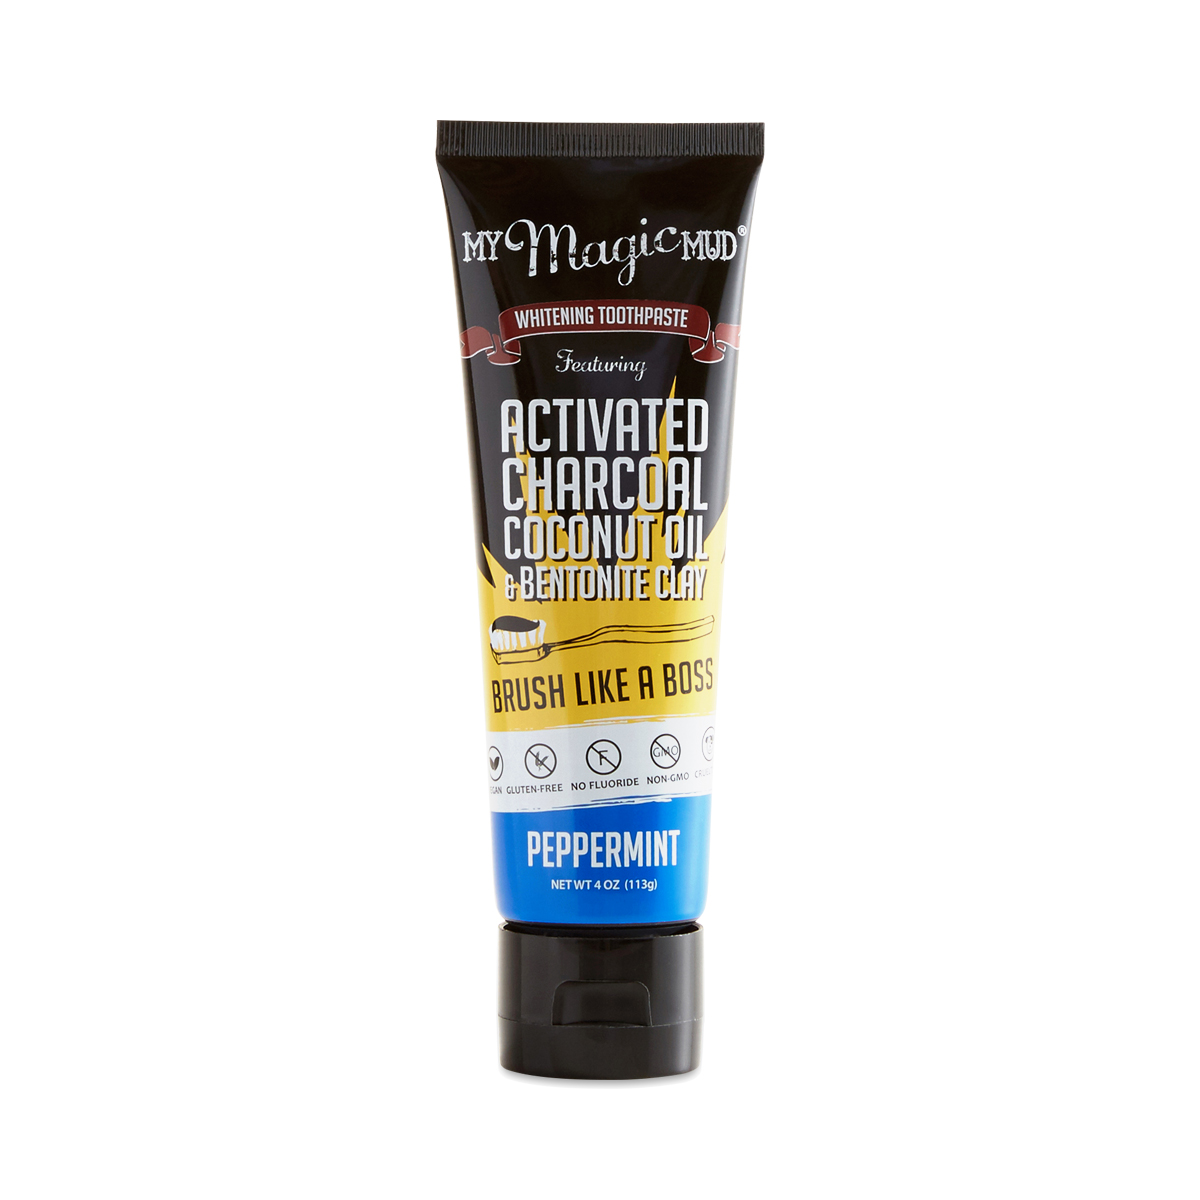 Black Magic I M In Love With The Charcoal: My Magic Mud Activated Charcoal Whitening Toothpaste